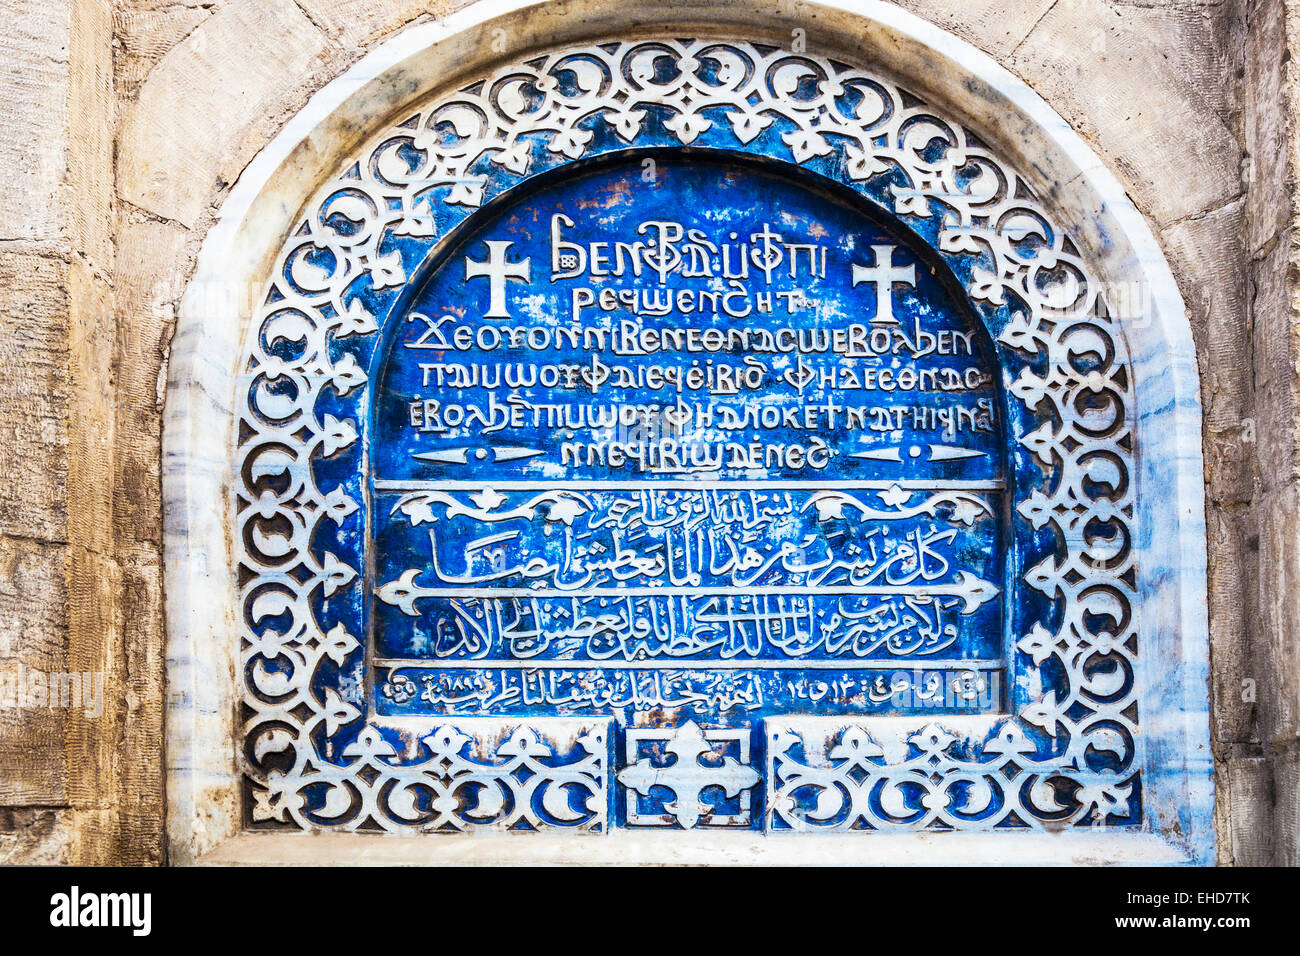 Inscription outside the Hanging Church or Church of the Virgin Mary in the Coptic quarter of Old Cairo. - Stock Image